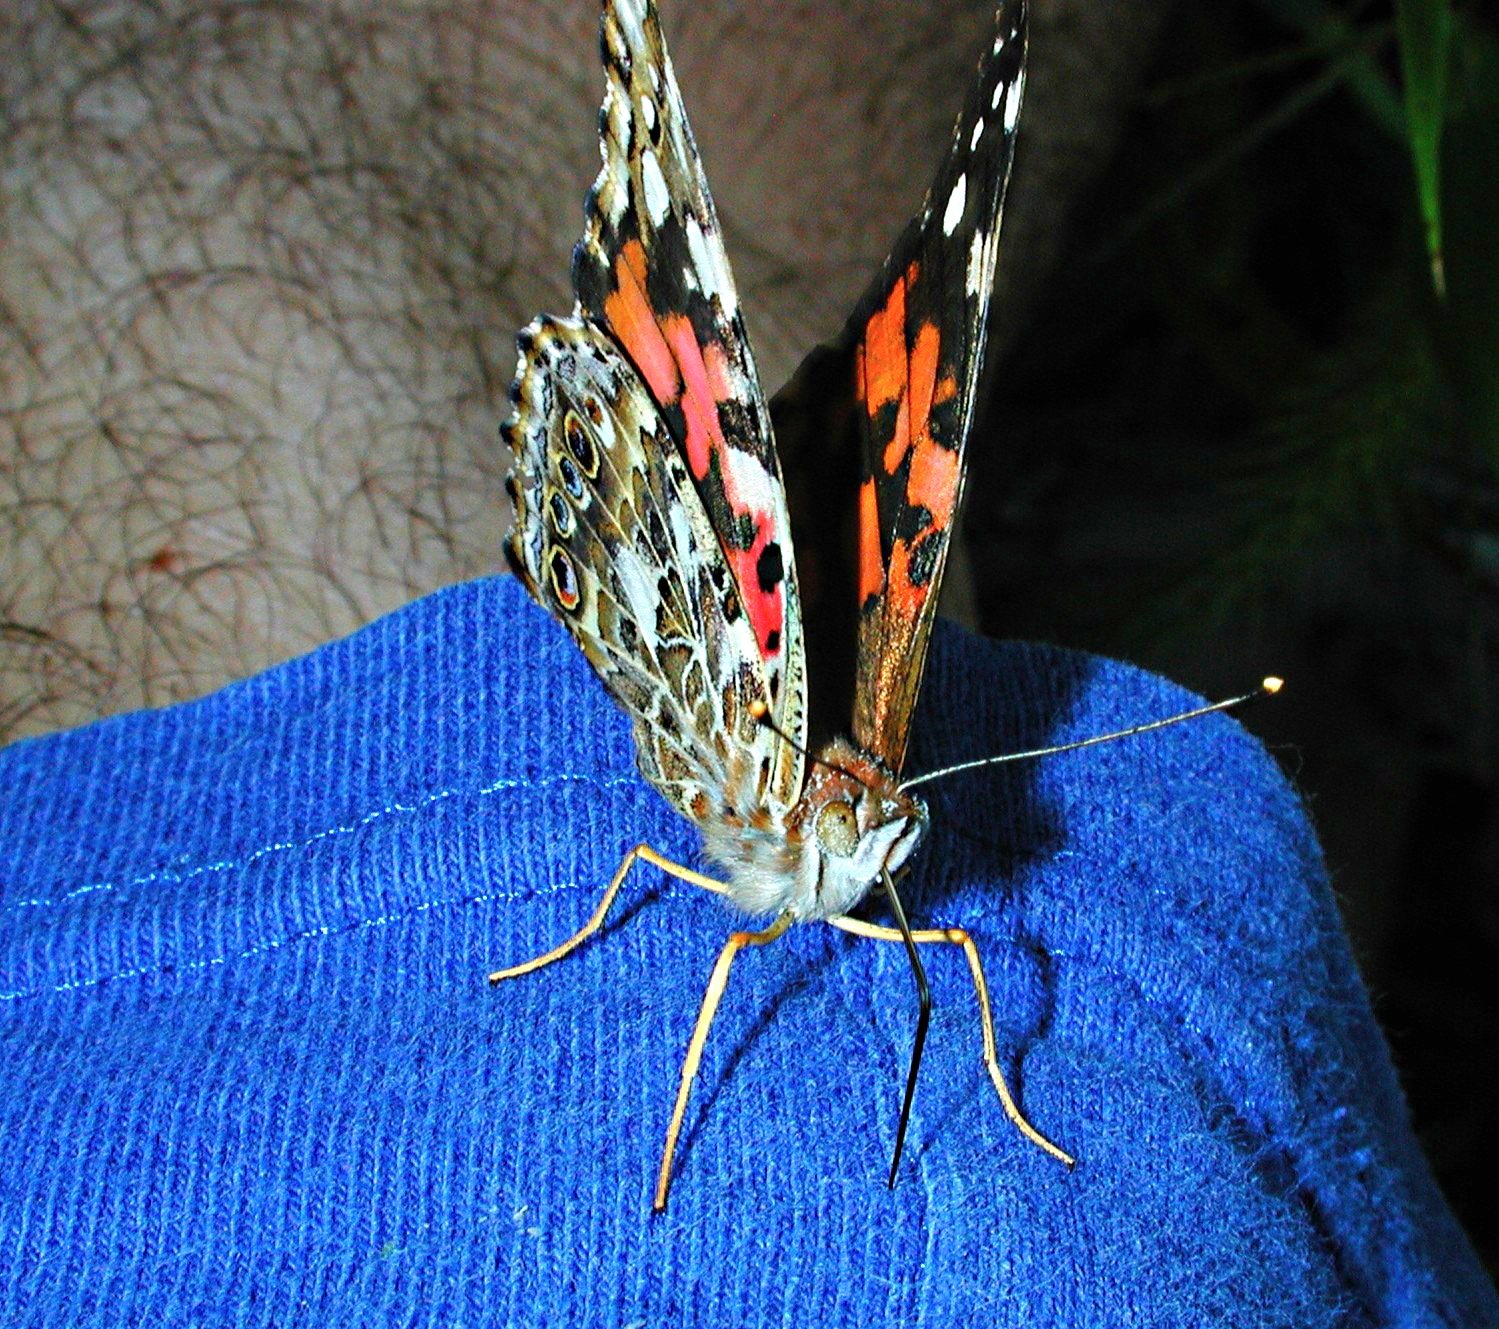 Another six-legged friend! (2) Photo by Thomas Peace 2014